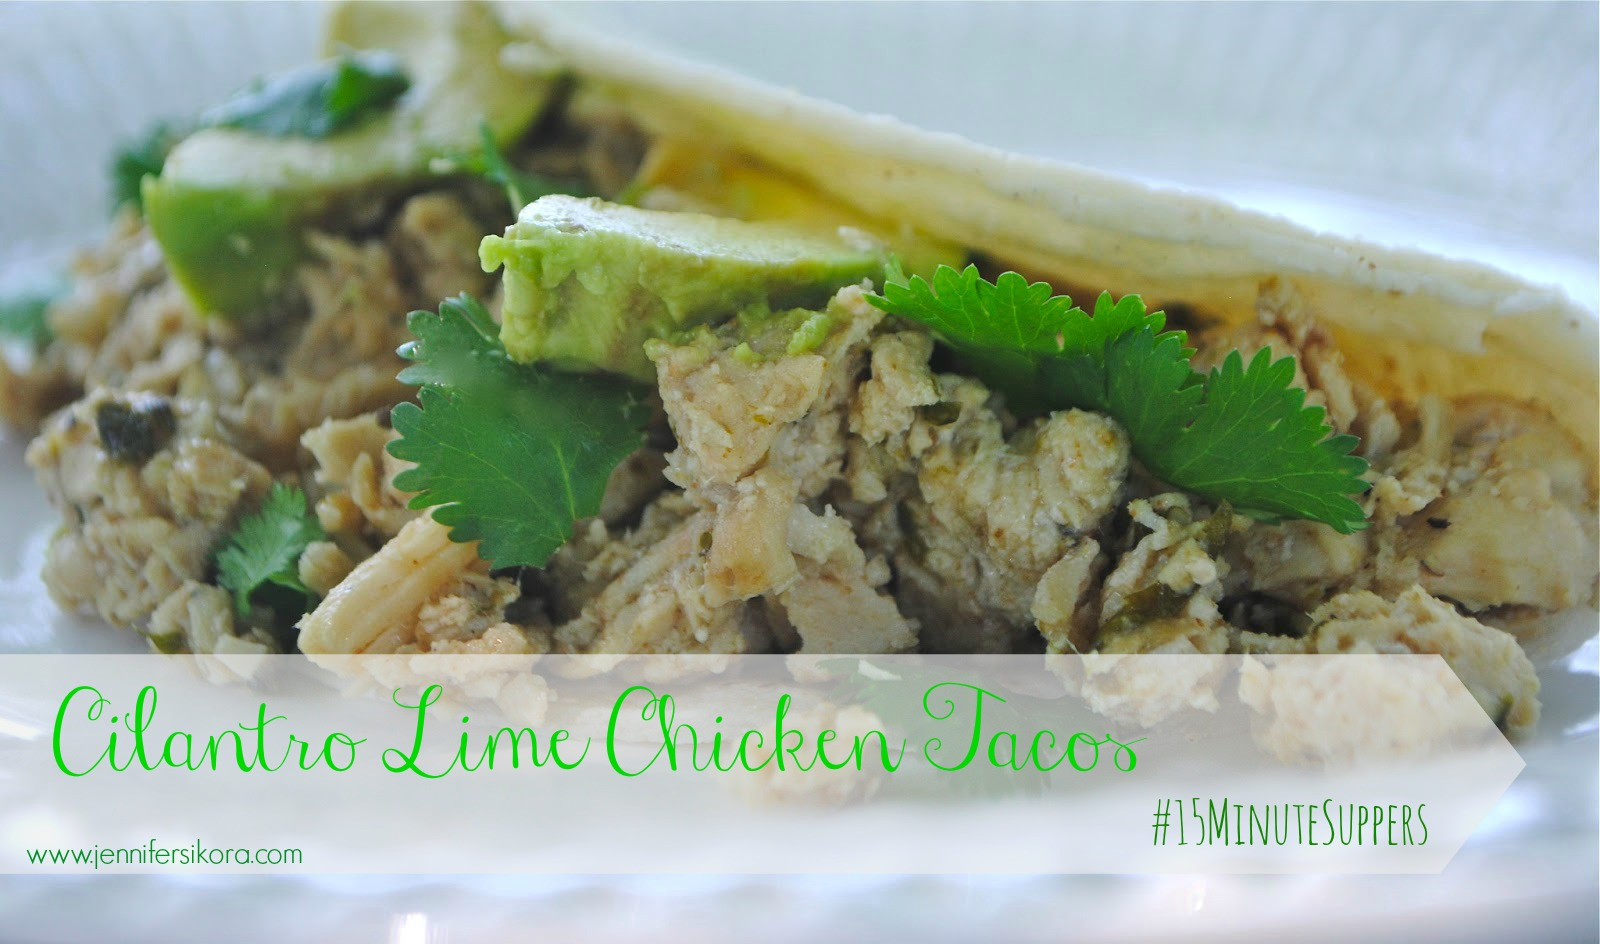 lime chicken tacos with rice 15minutesuppers ingredients 12 soft taco ...